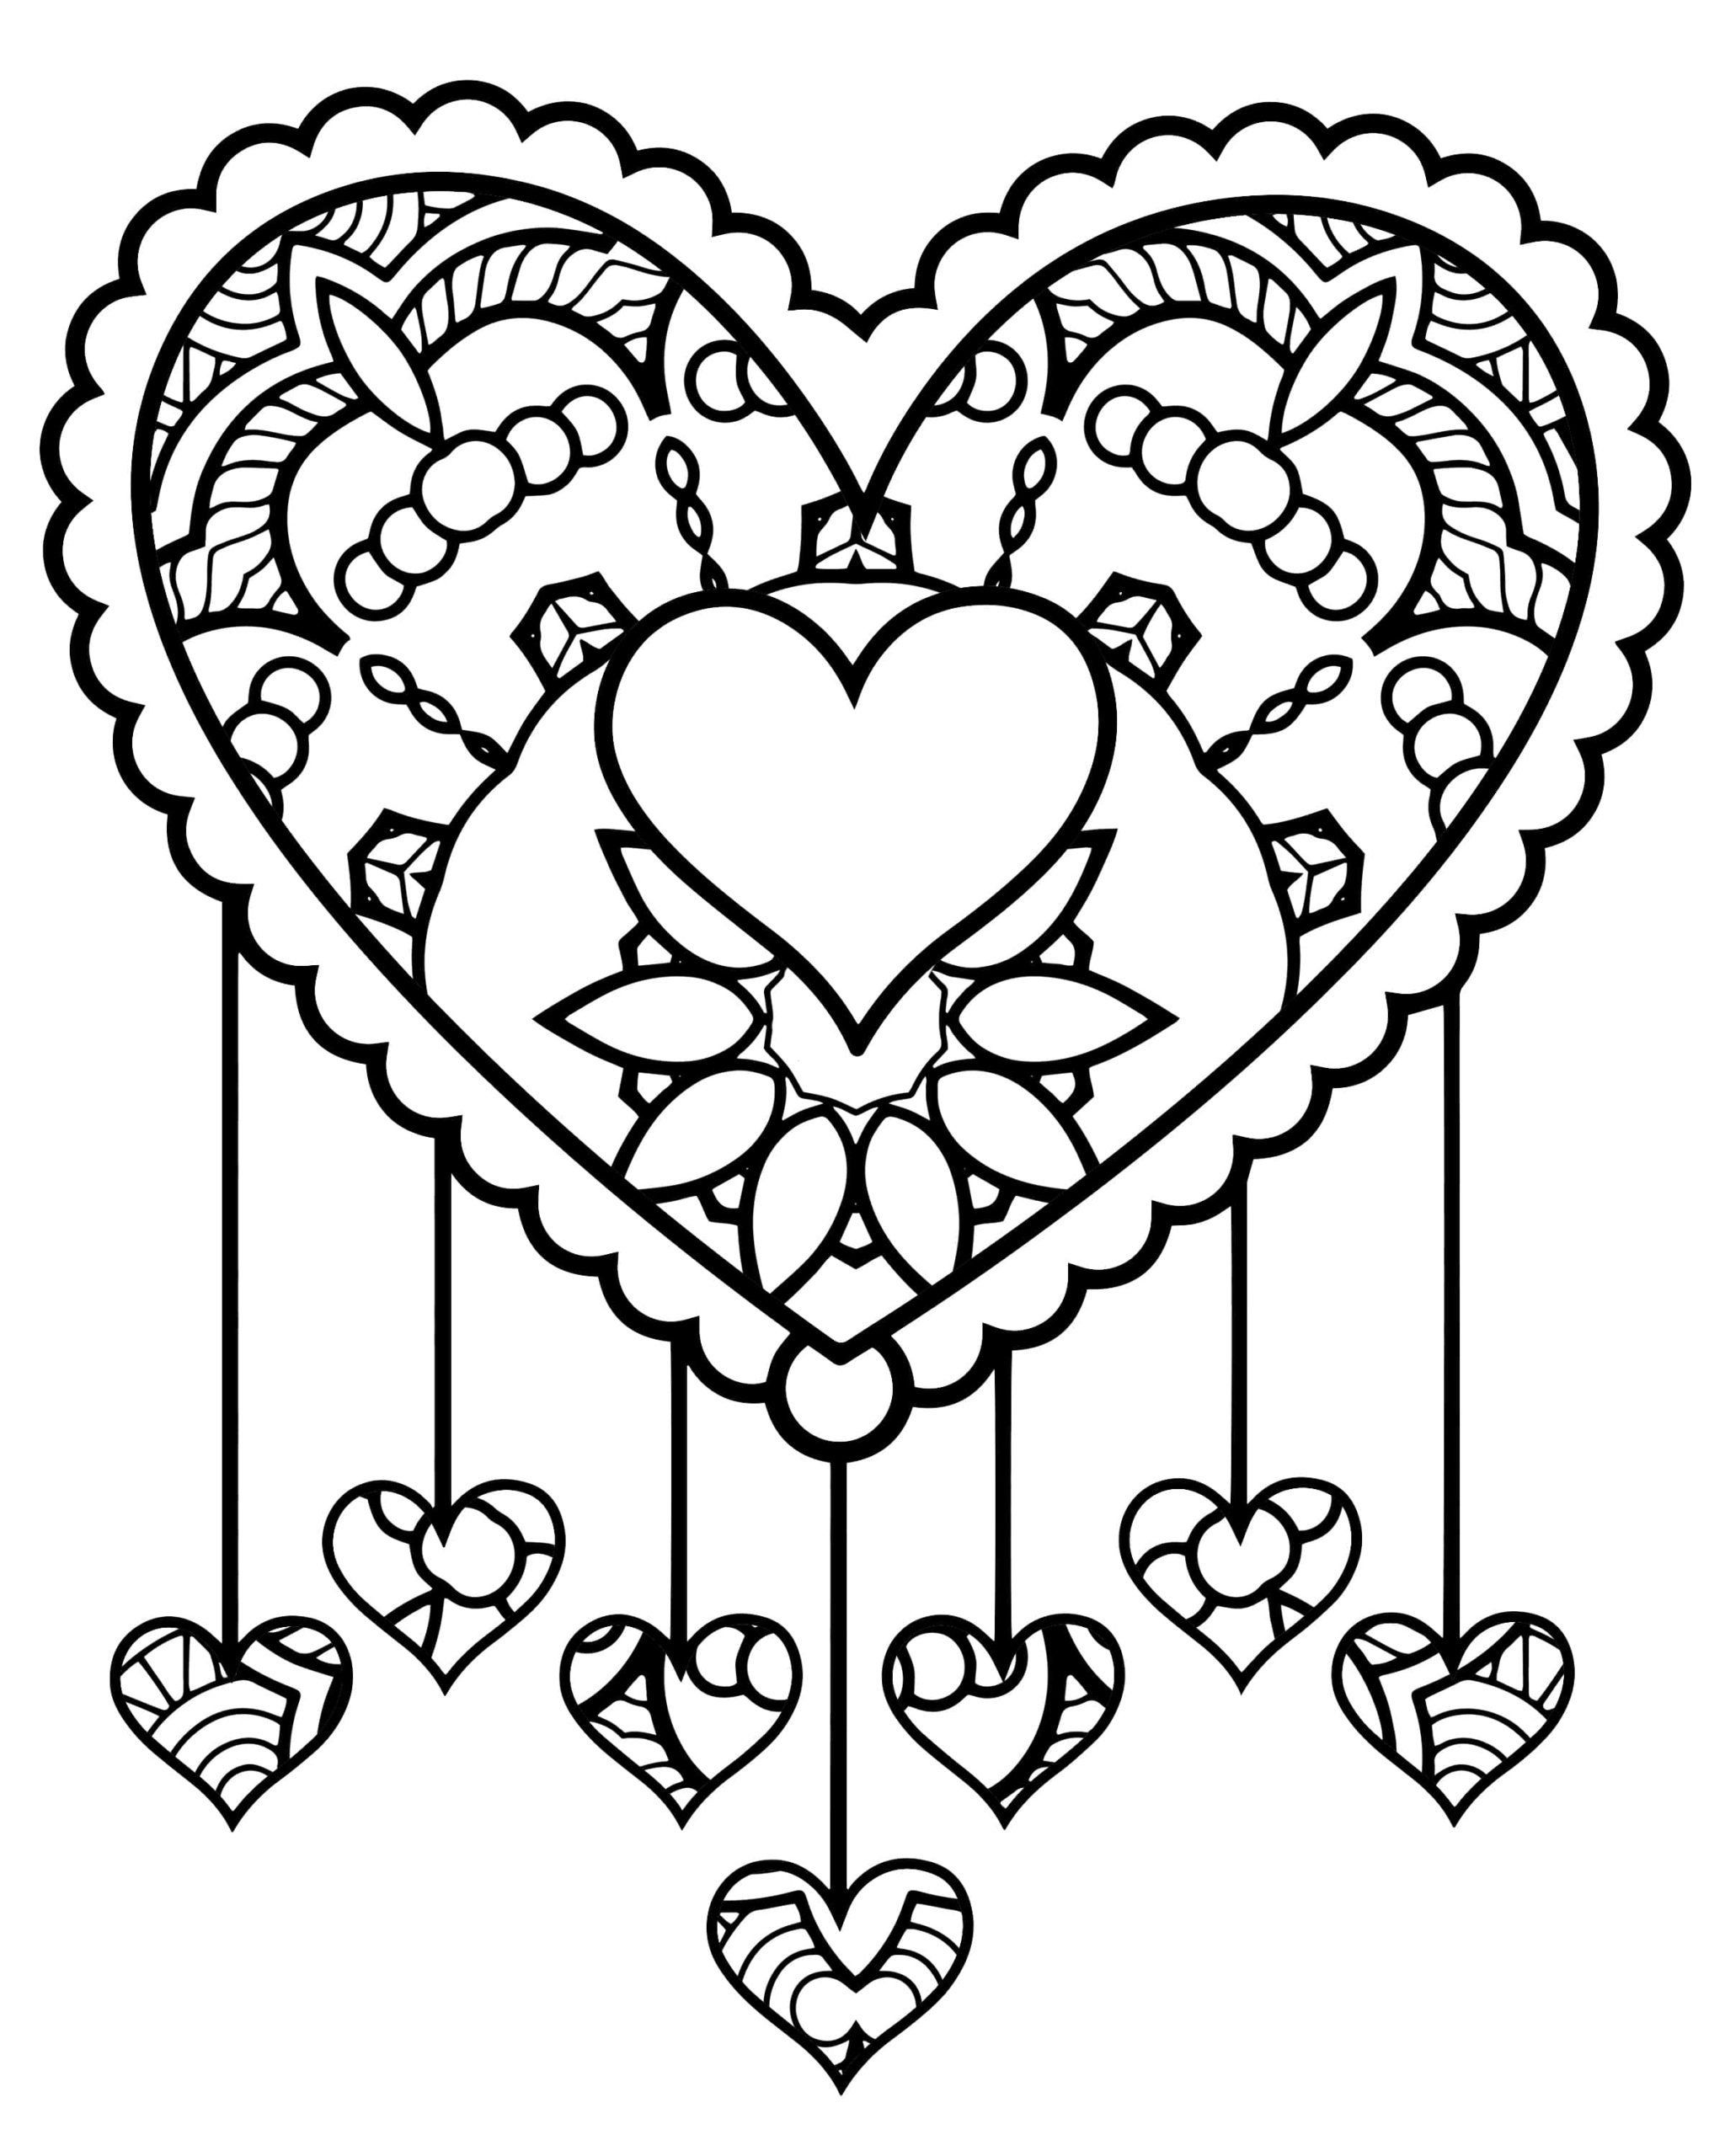 Cute Heart Coloring Pages Top 11 Tremendous Coloring Valentines Day Page Printable Skull Coloring Pages Love Coloring Pages Coloring Pages For Girls